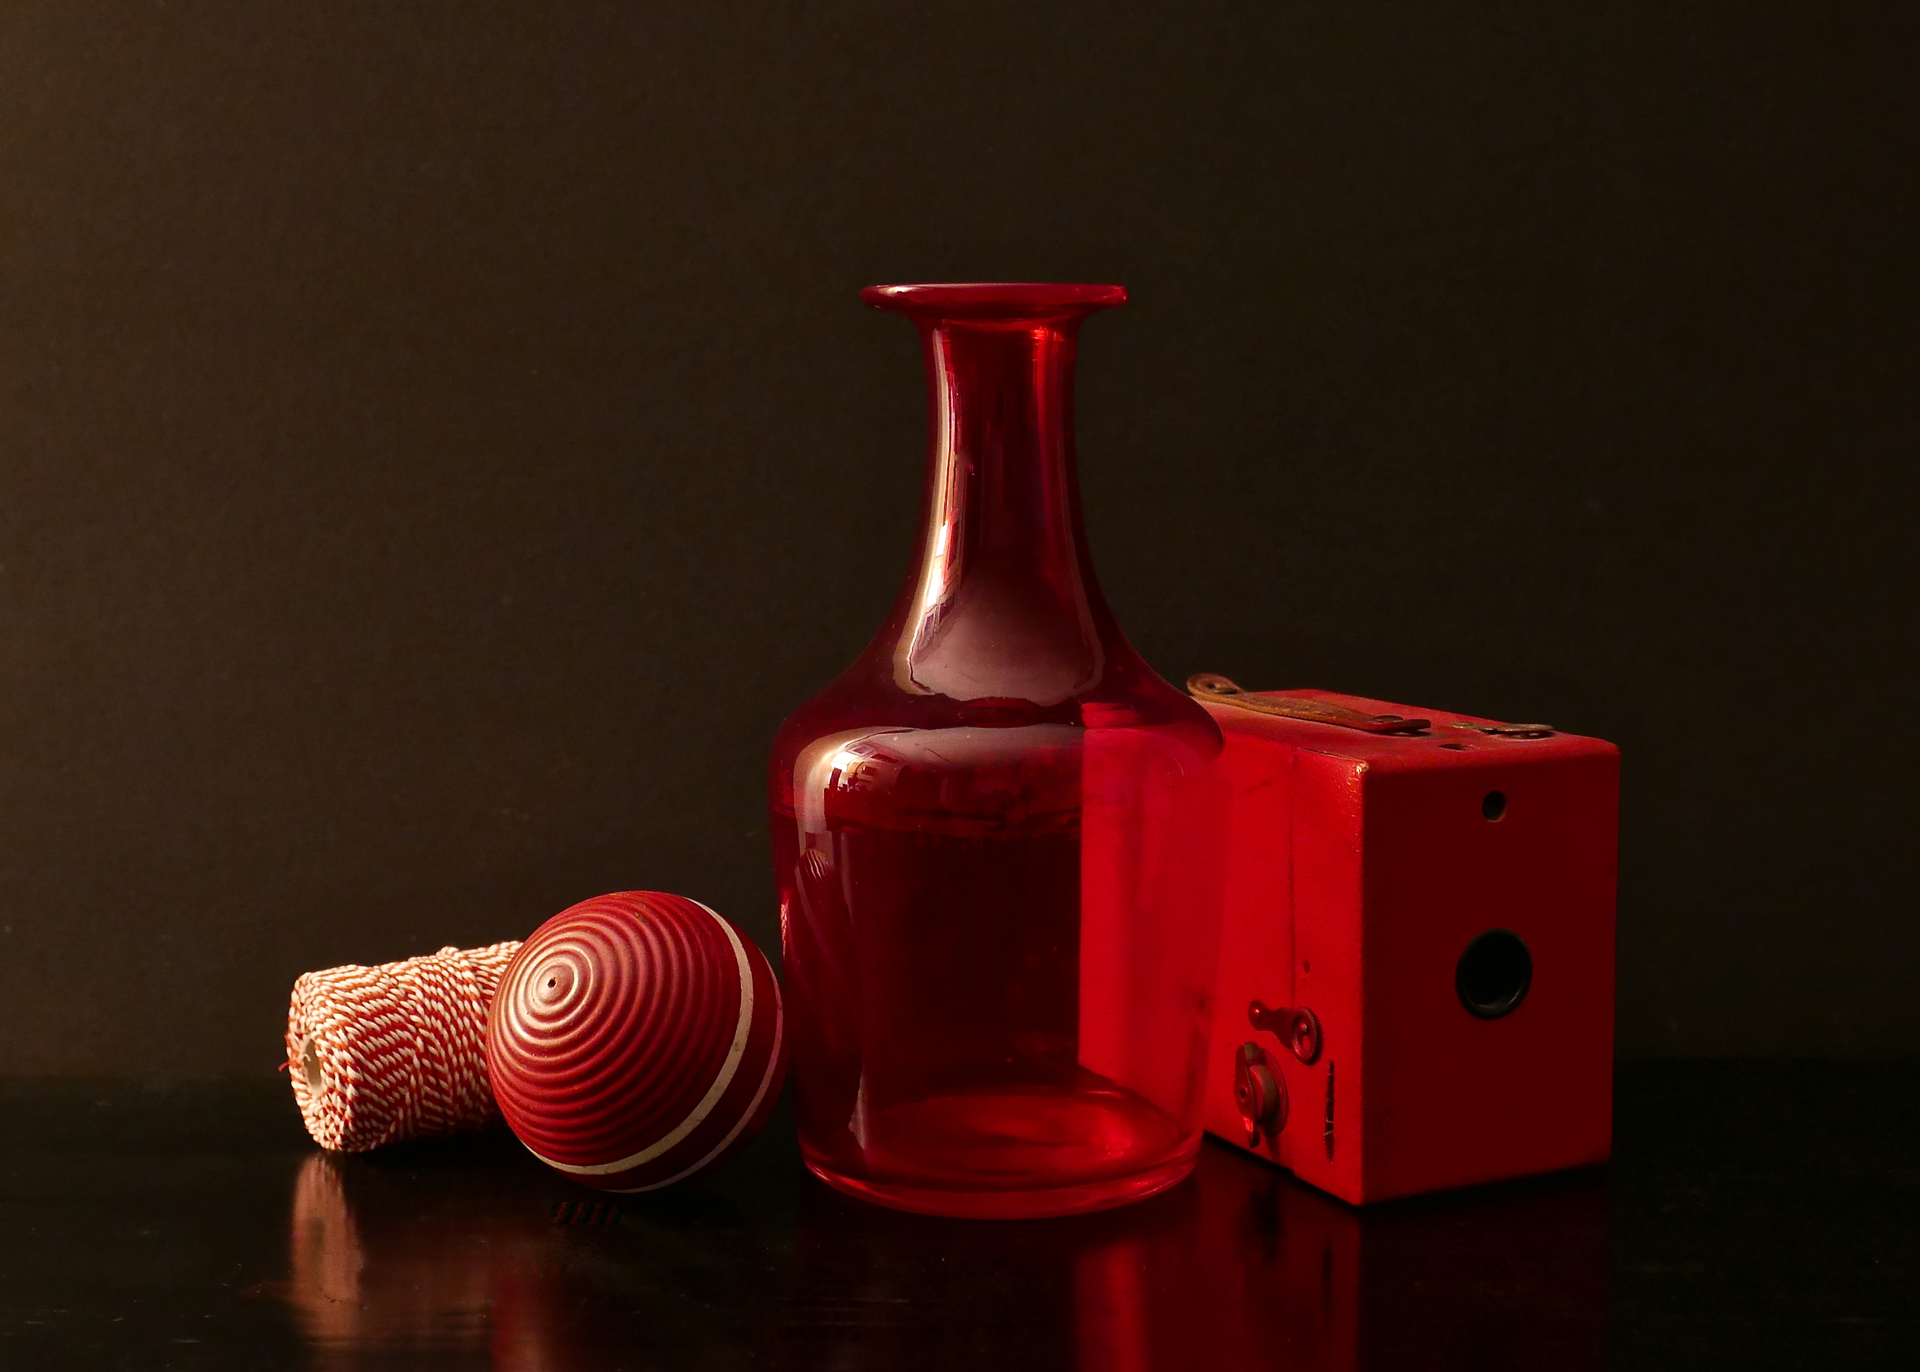 Red Objects